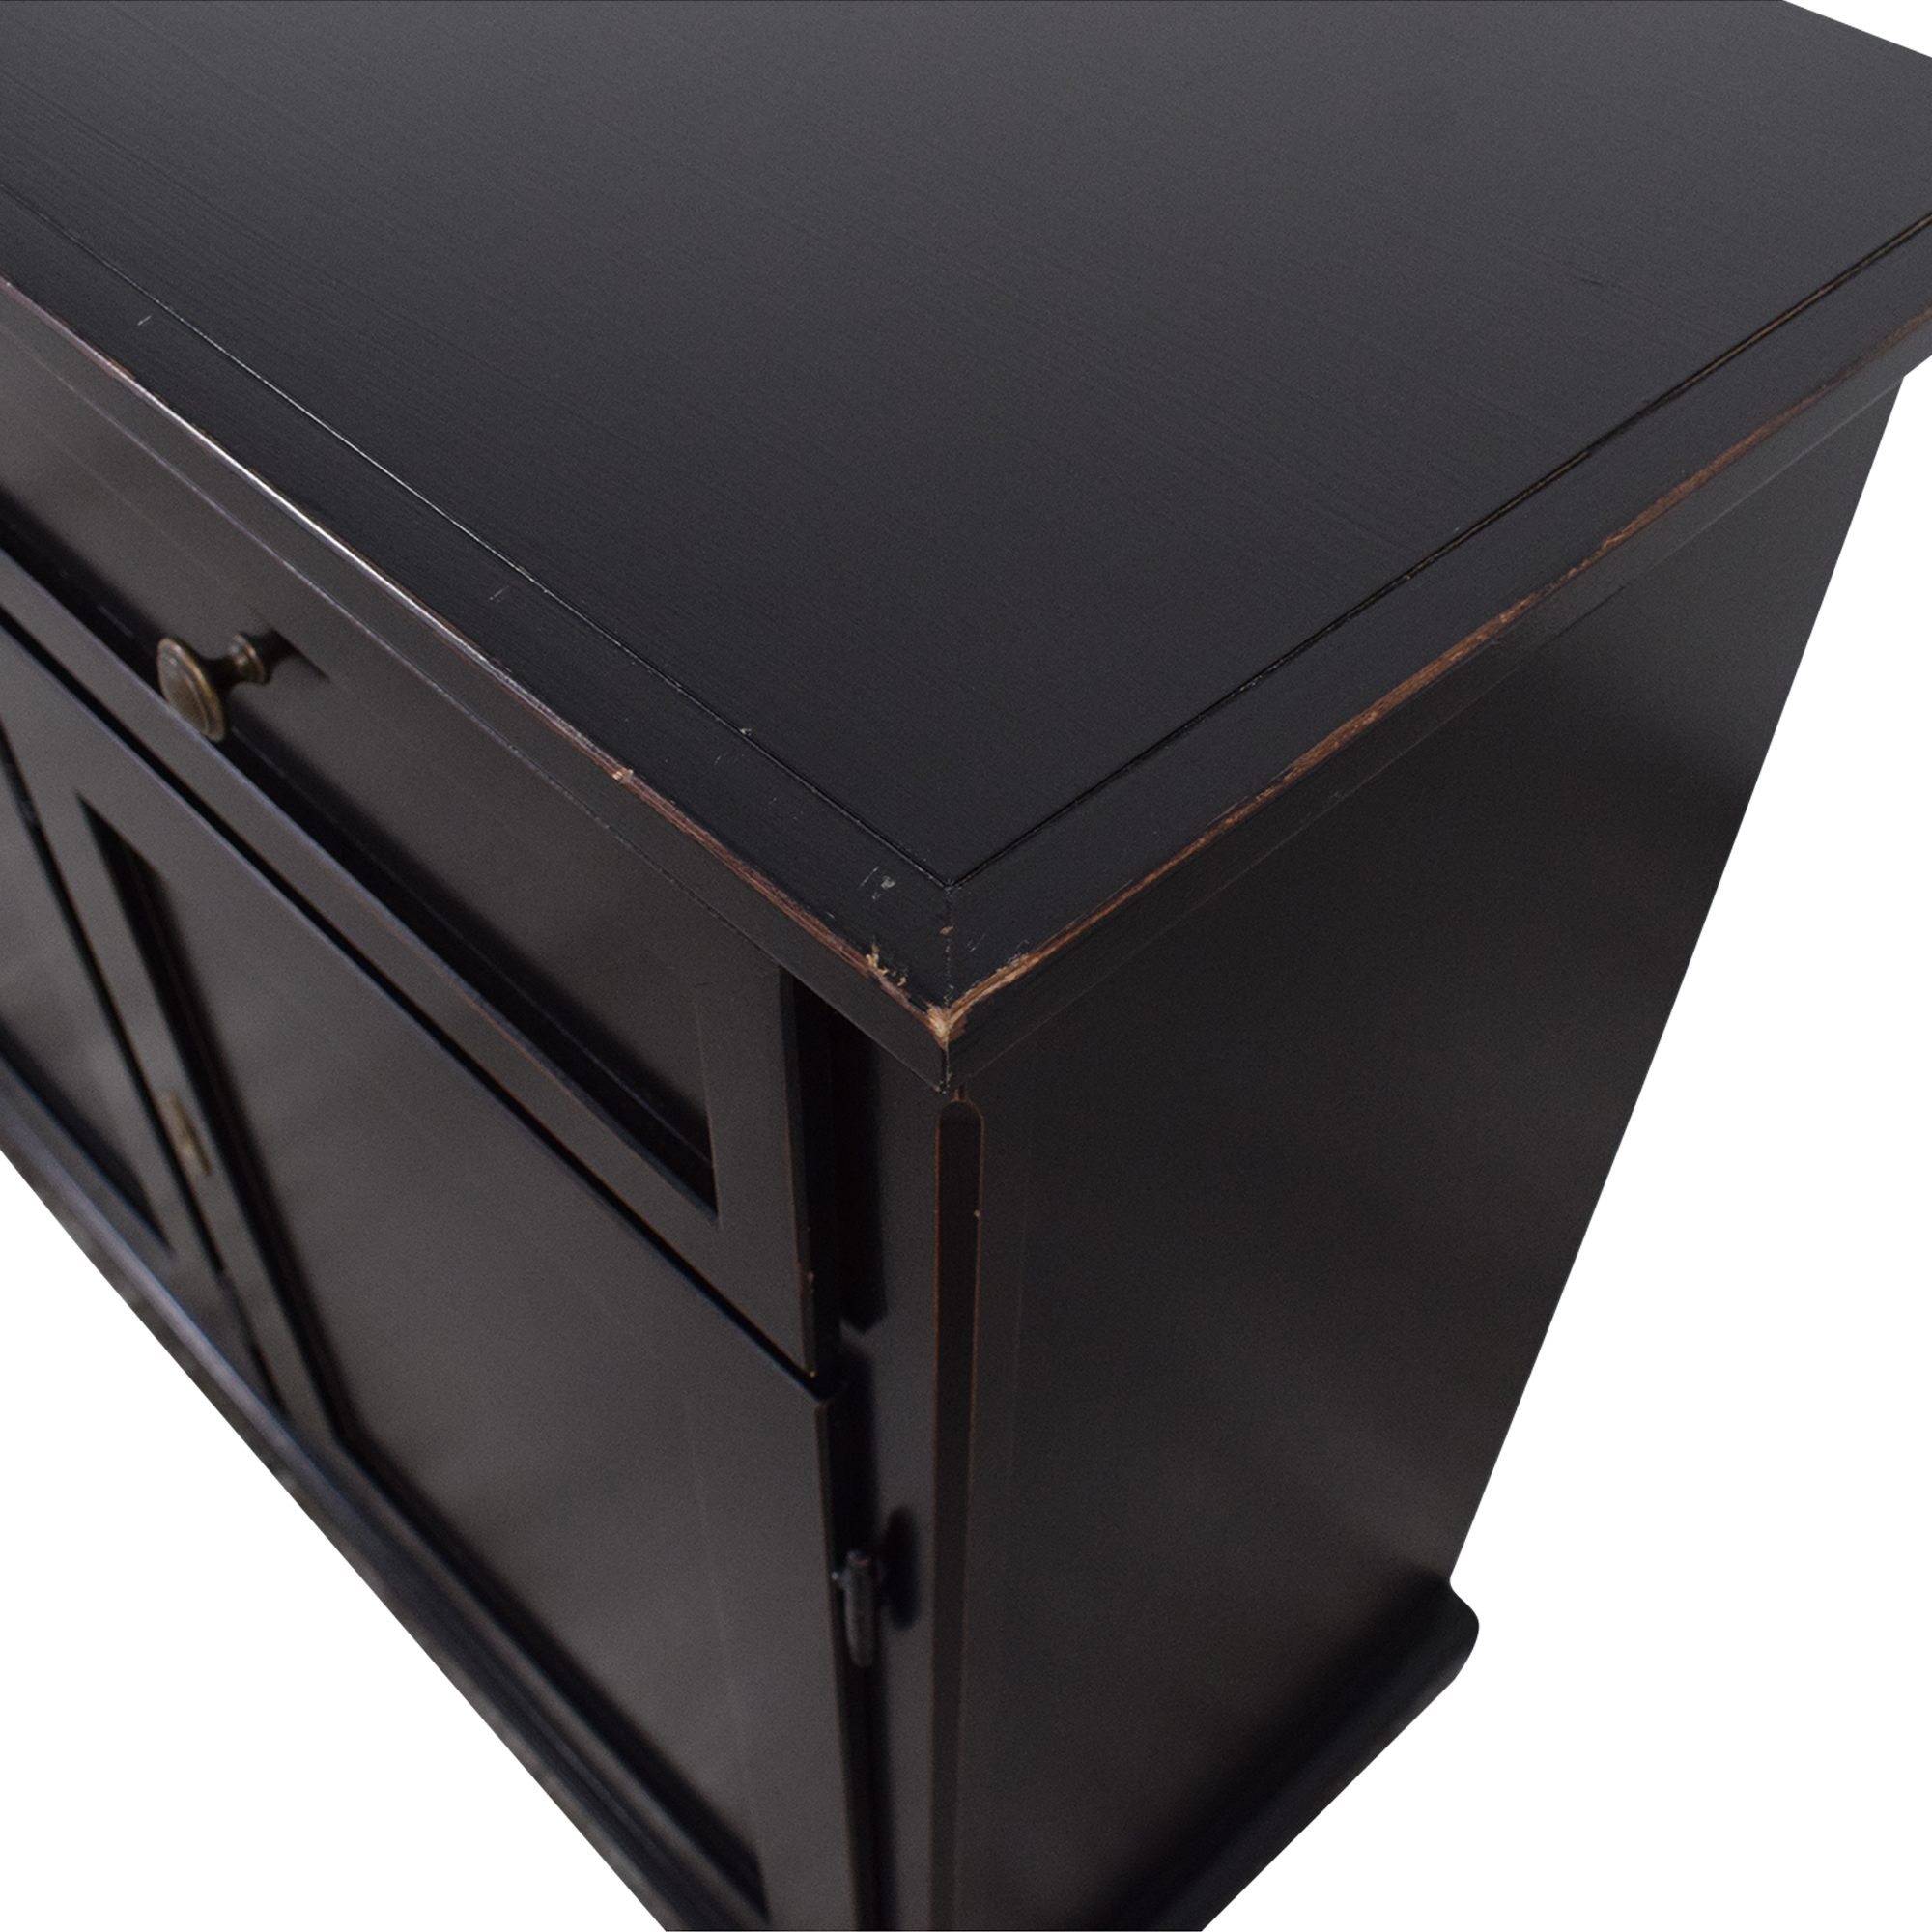 Crate & Barrel Crate & Barrel Pranzo II Sideboard black